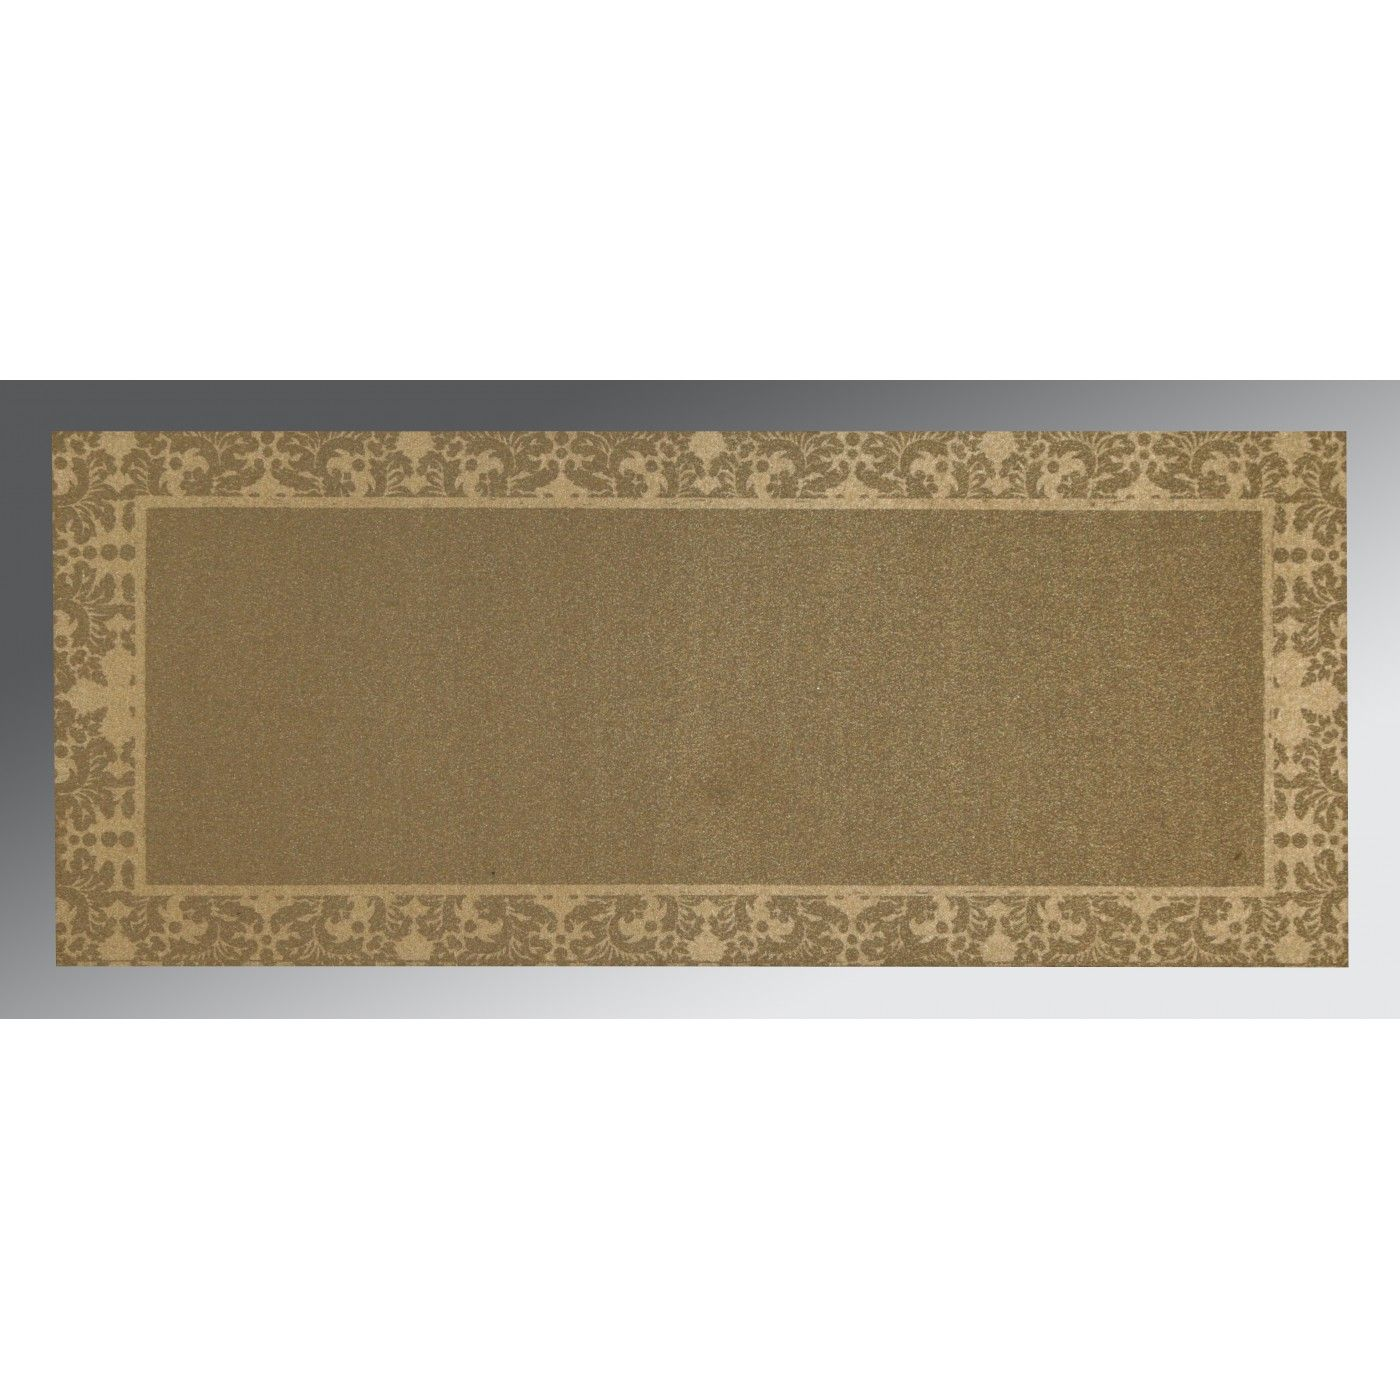 COFFEE BROWN SHIMMERY SCREEN PRINTED WEDDING INVITATION : CG-1500 - IndianWeddingCards